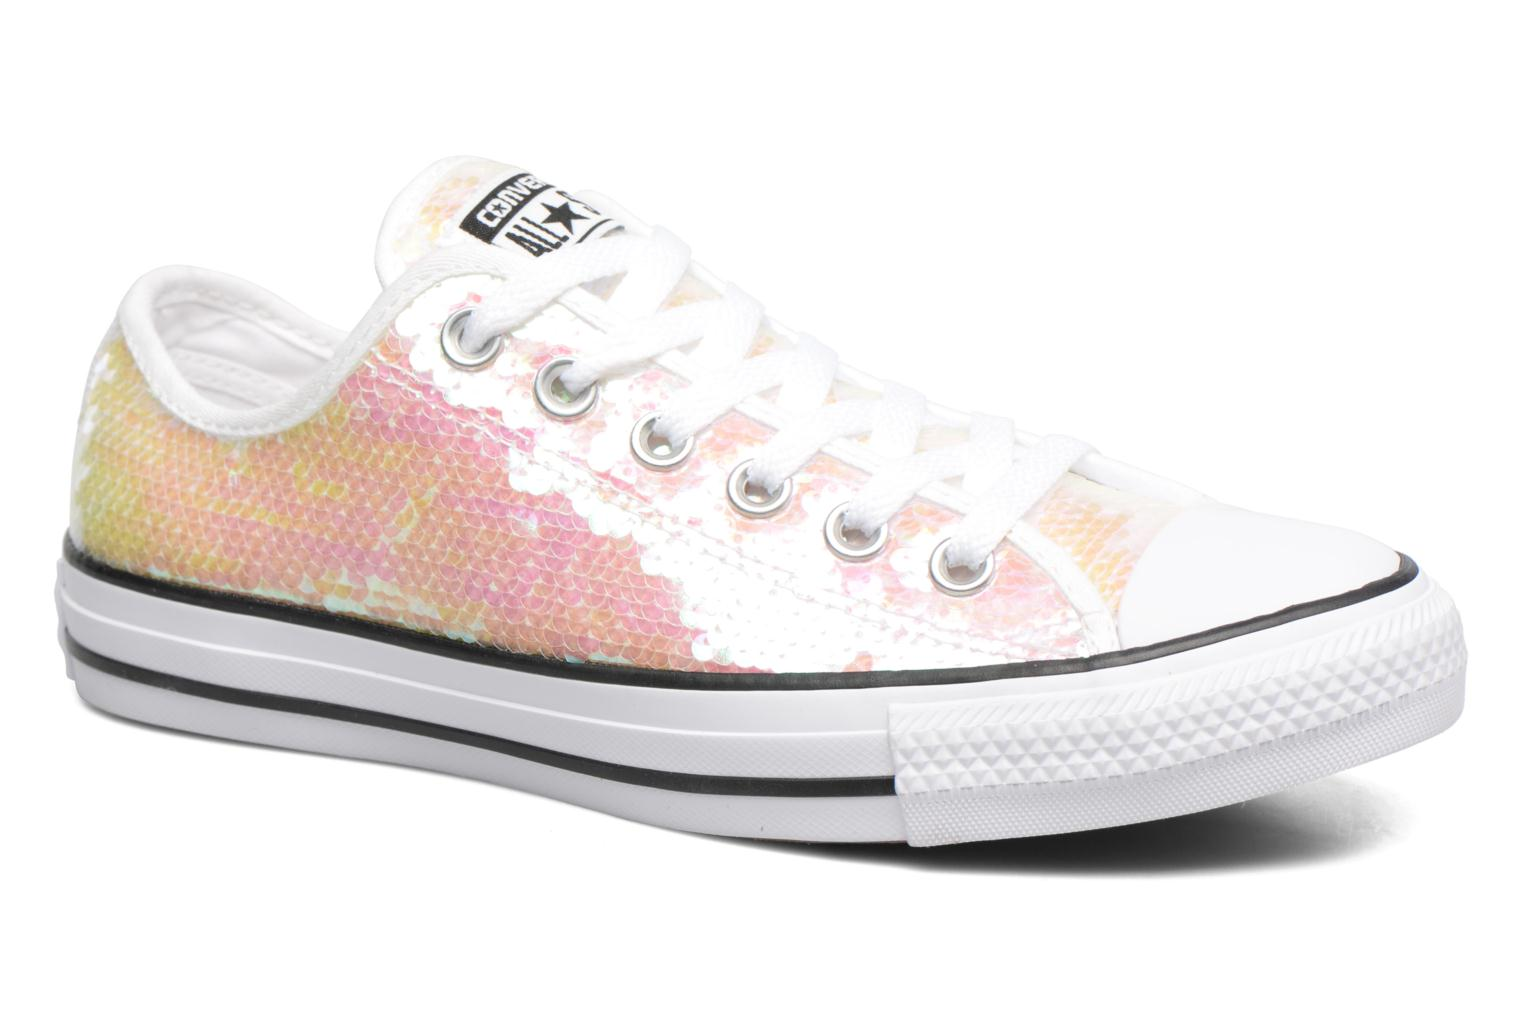 Chuck Taylor All Star Sequins Ox White/Black/White